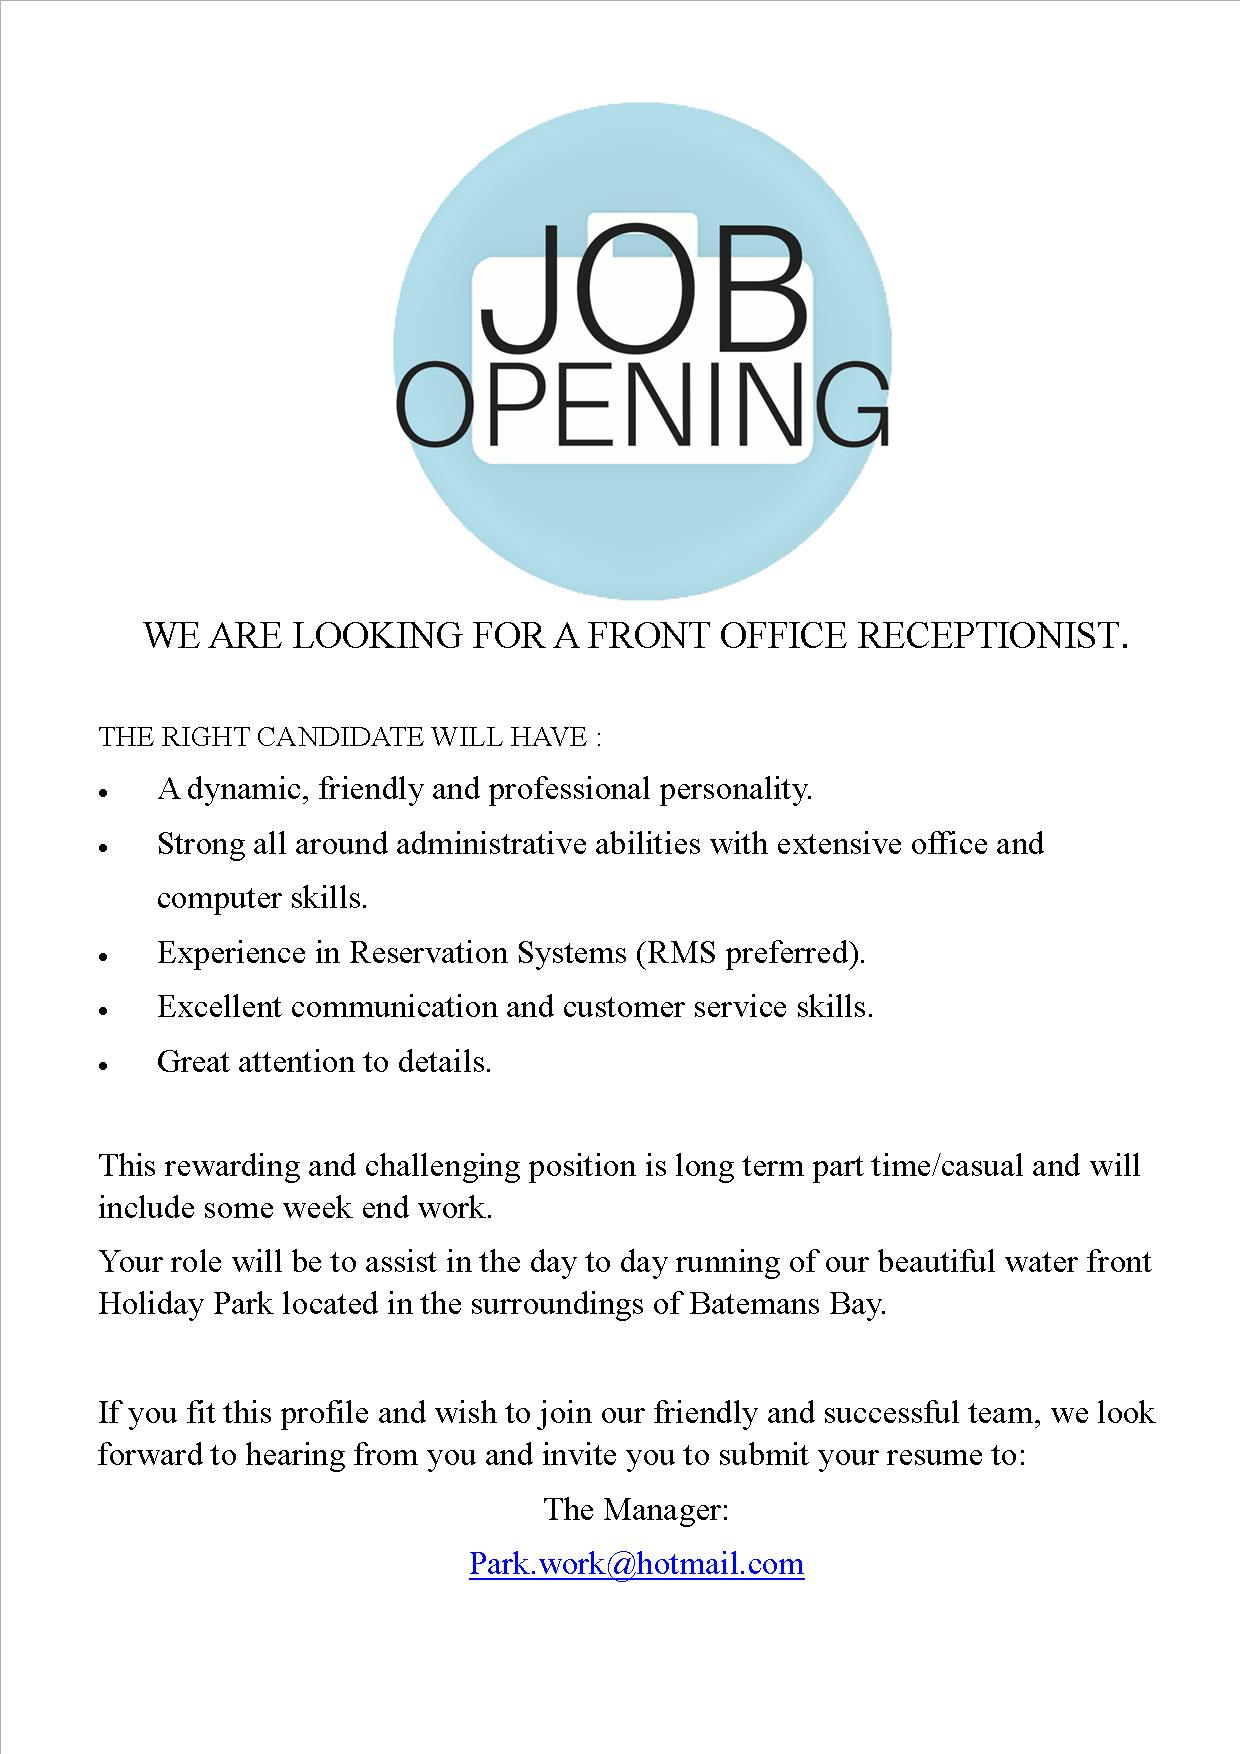 Job File   Clyde View Holiday Park